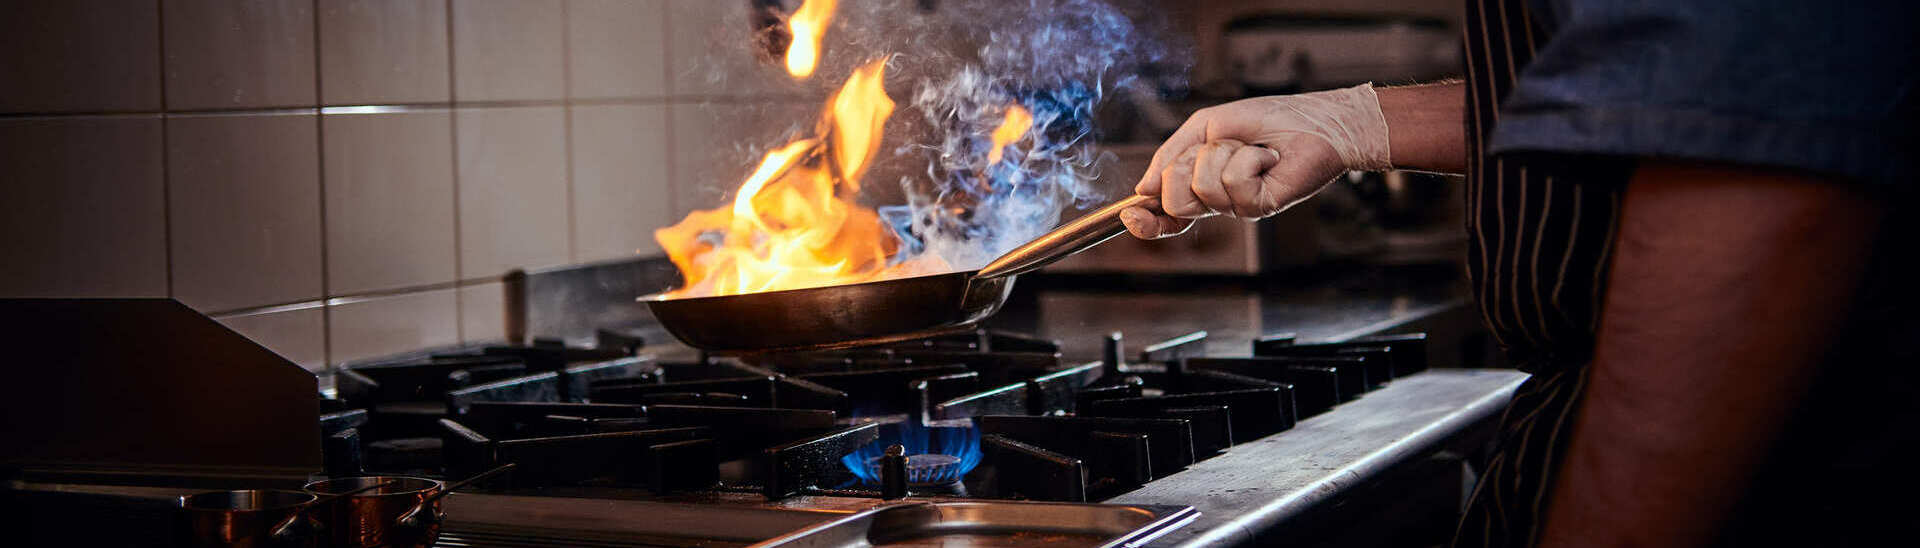 cooker-wearing-gloves-and-apron-frying-flambe-on-a-84NC27C(2)(1)(1)(1)